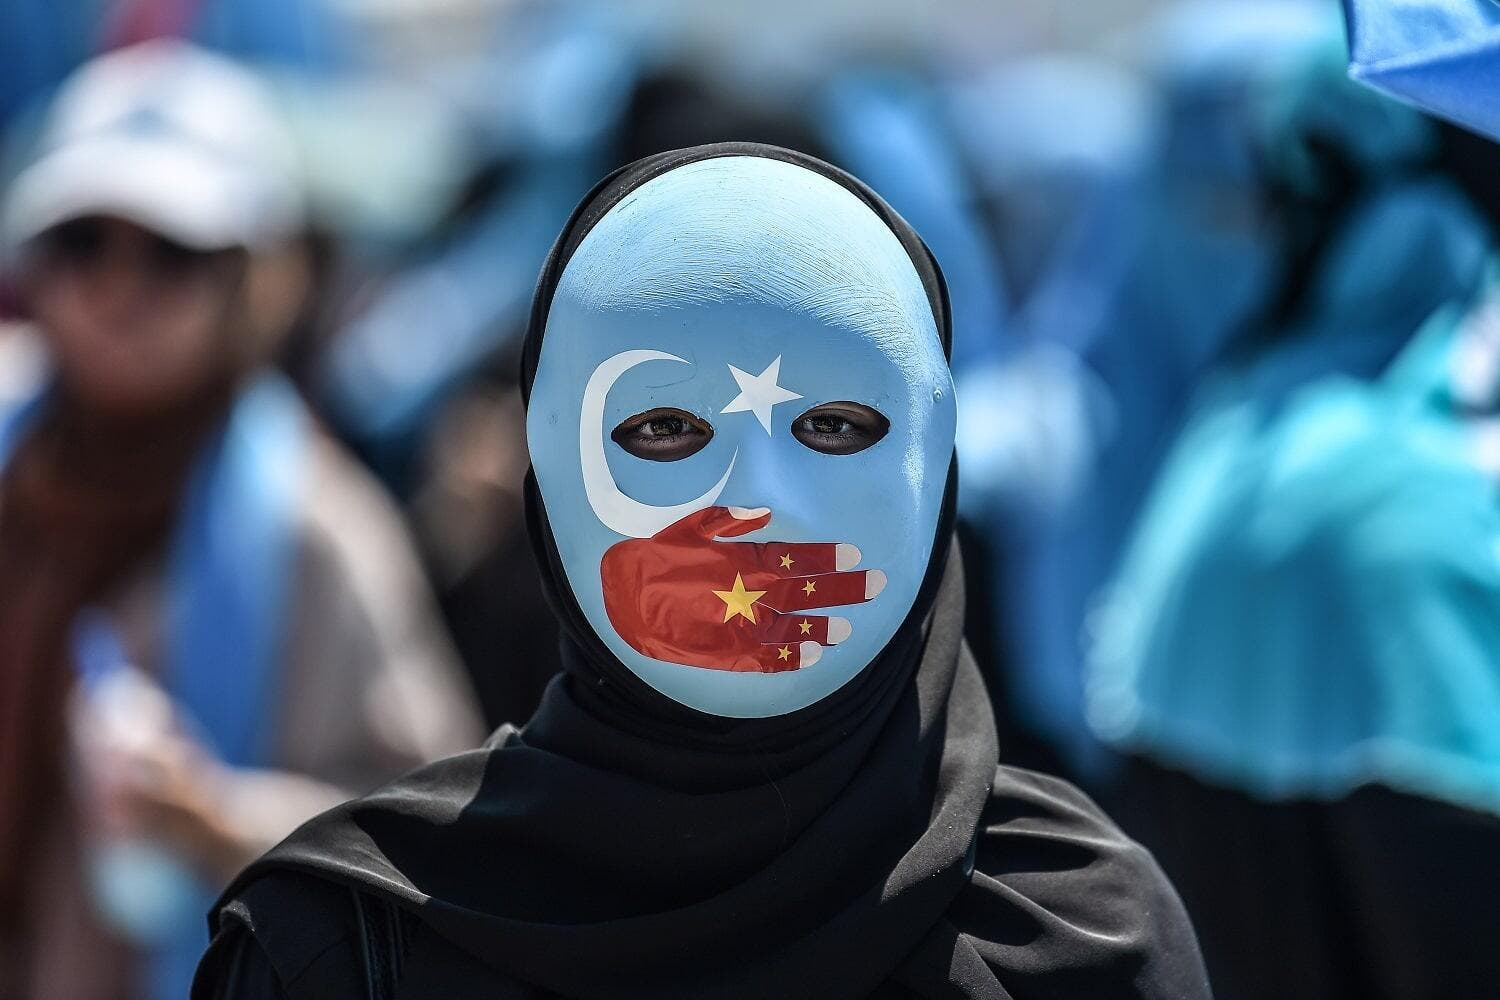 Video of Blindfolded, Shackled Chinese Uighur Muslims ...